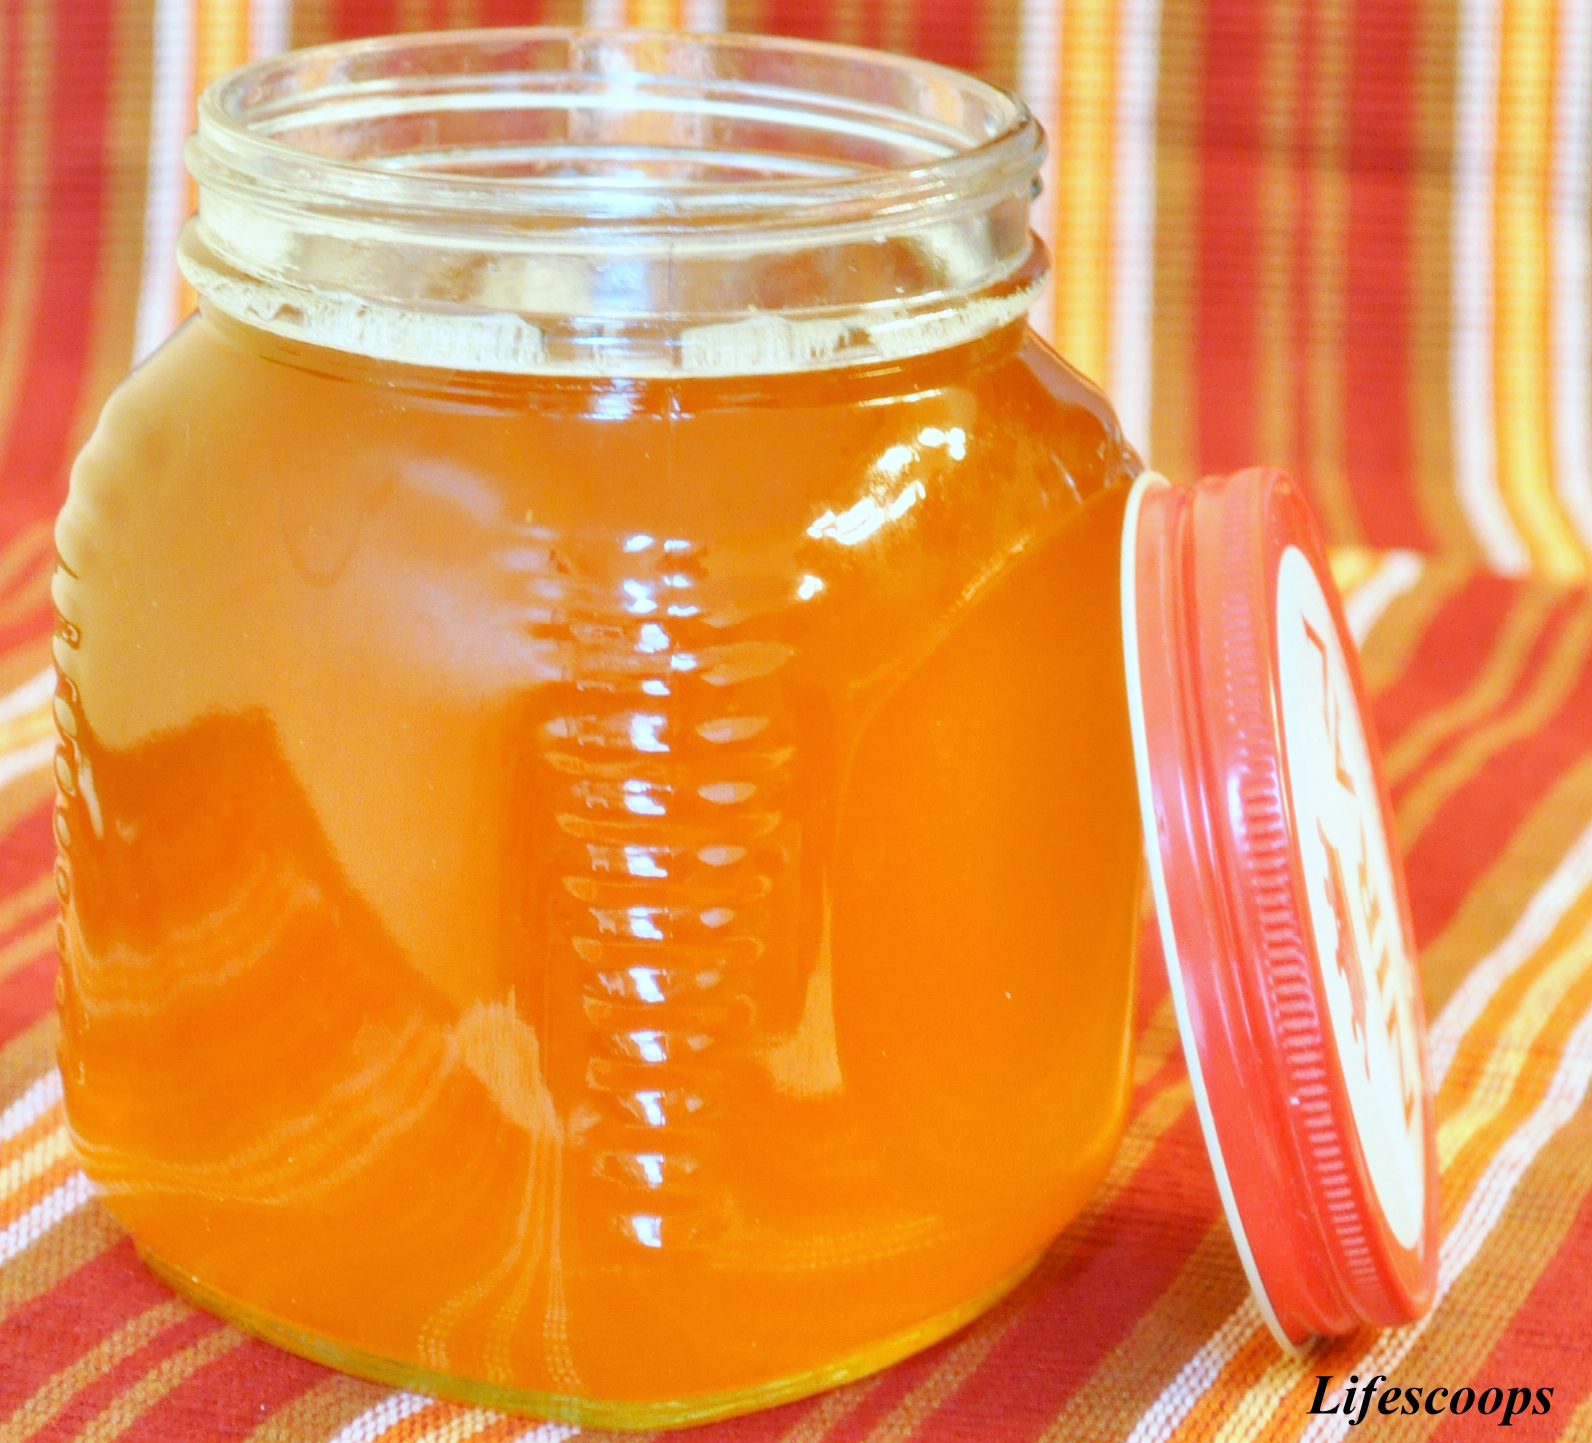 Life Scoops Home Made Ghee Clarified Butter